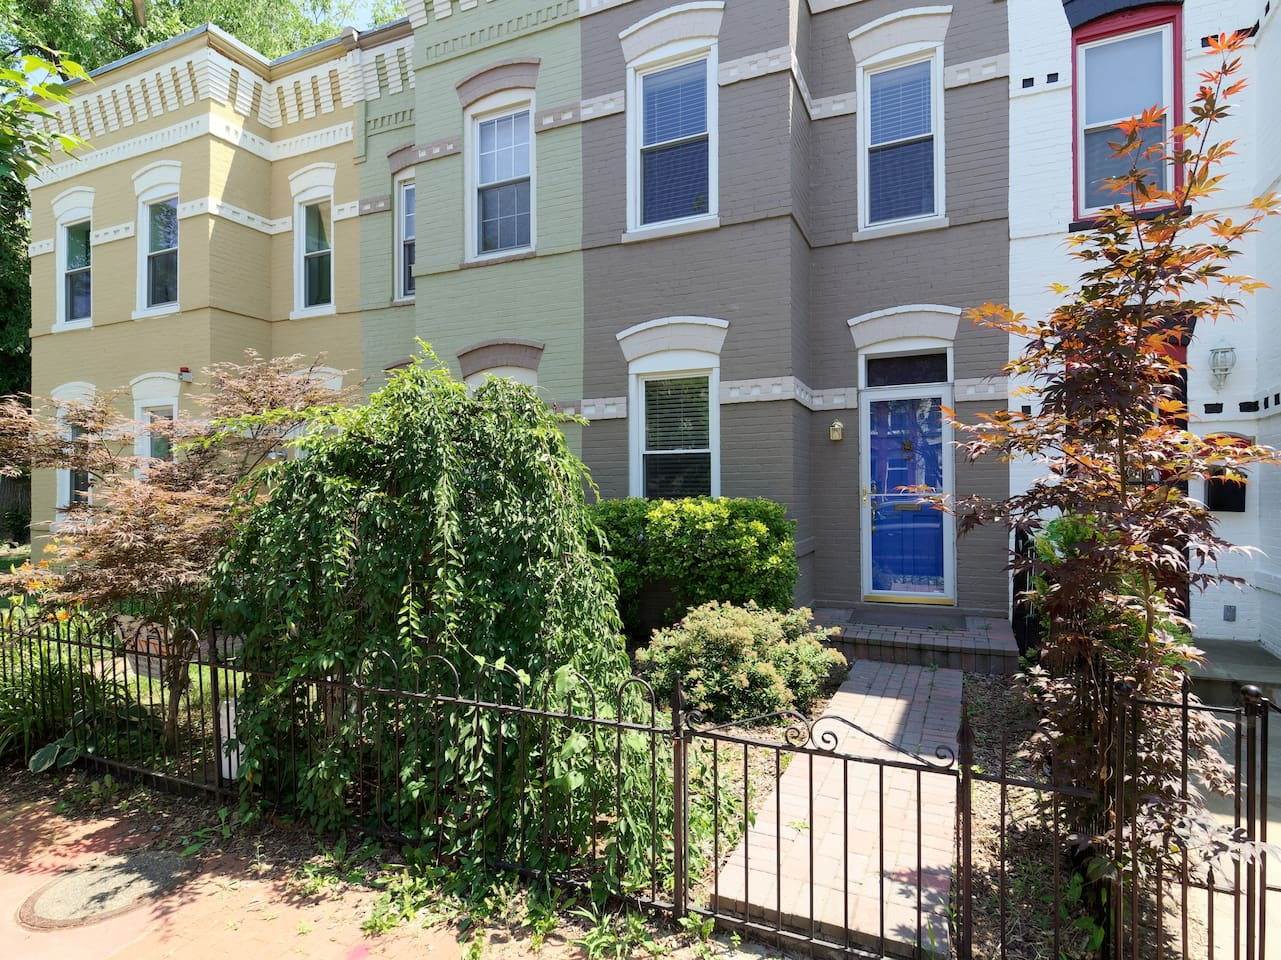 Renovated rowhouse located between Navy Yard & Capitol Hill